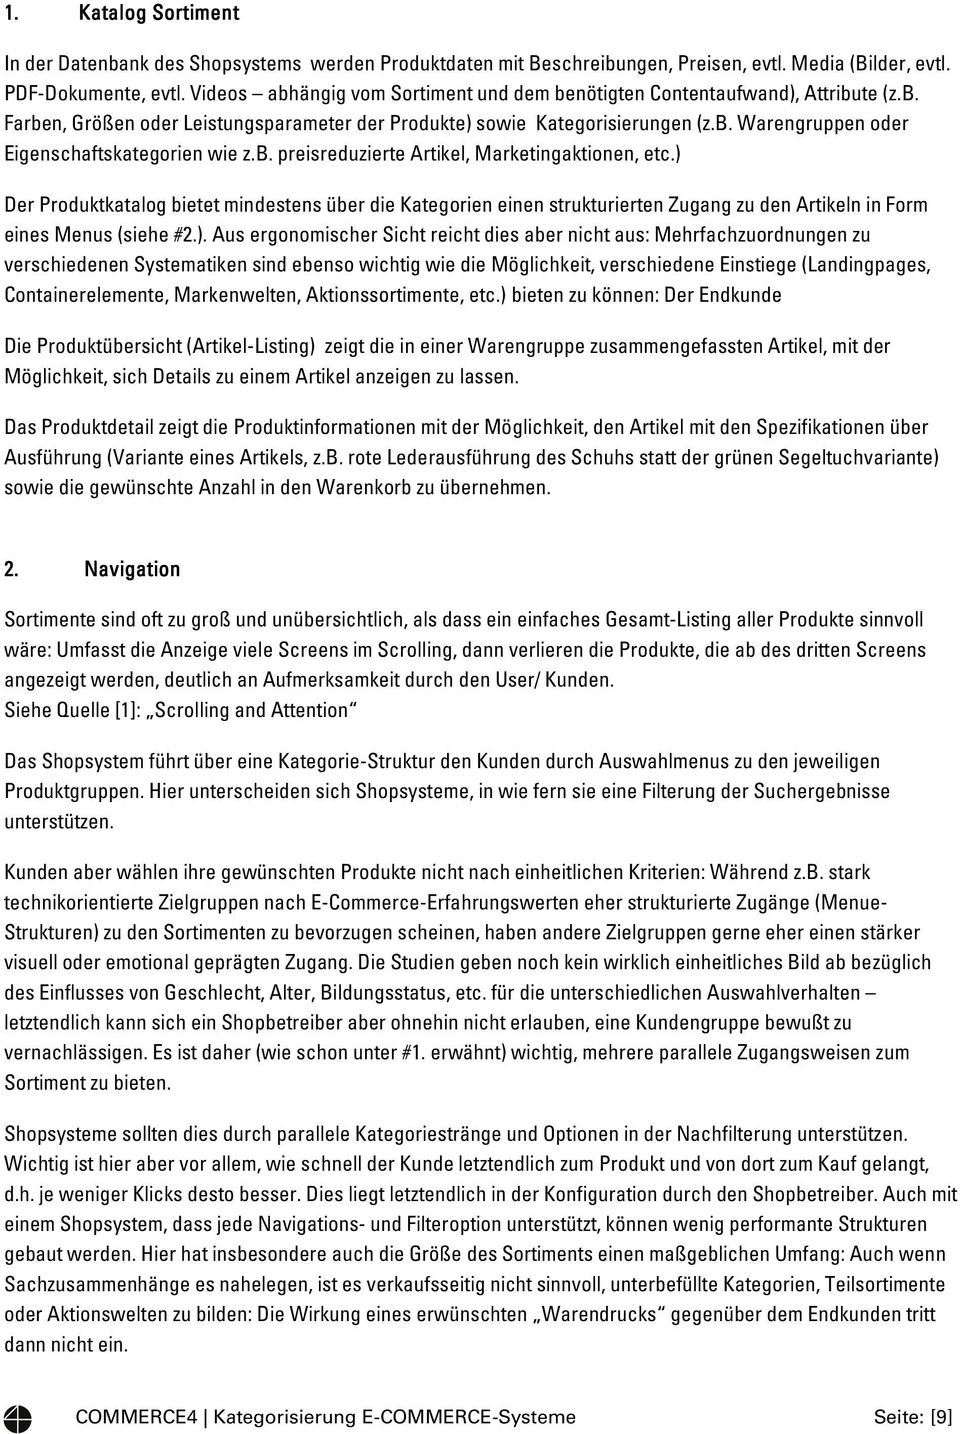 b. preisreduzierte Artikel, Marketingaktionen, etc.)